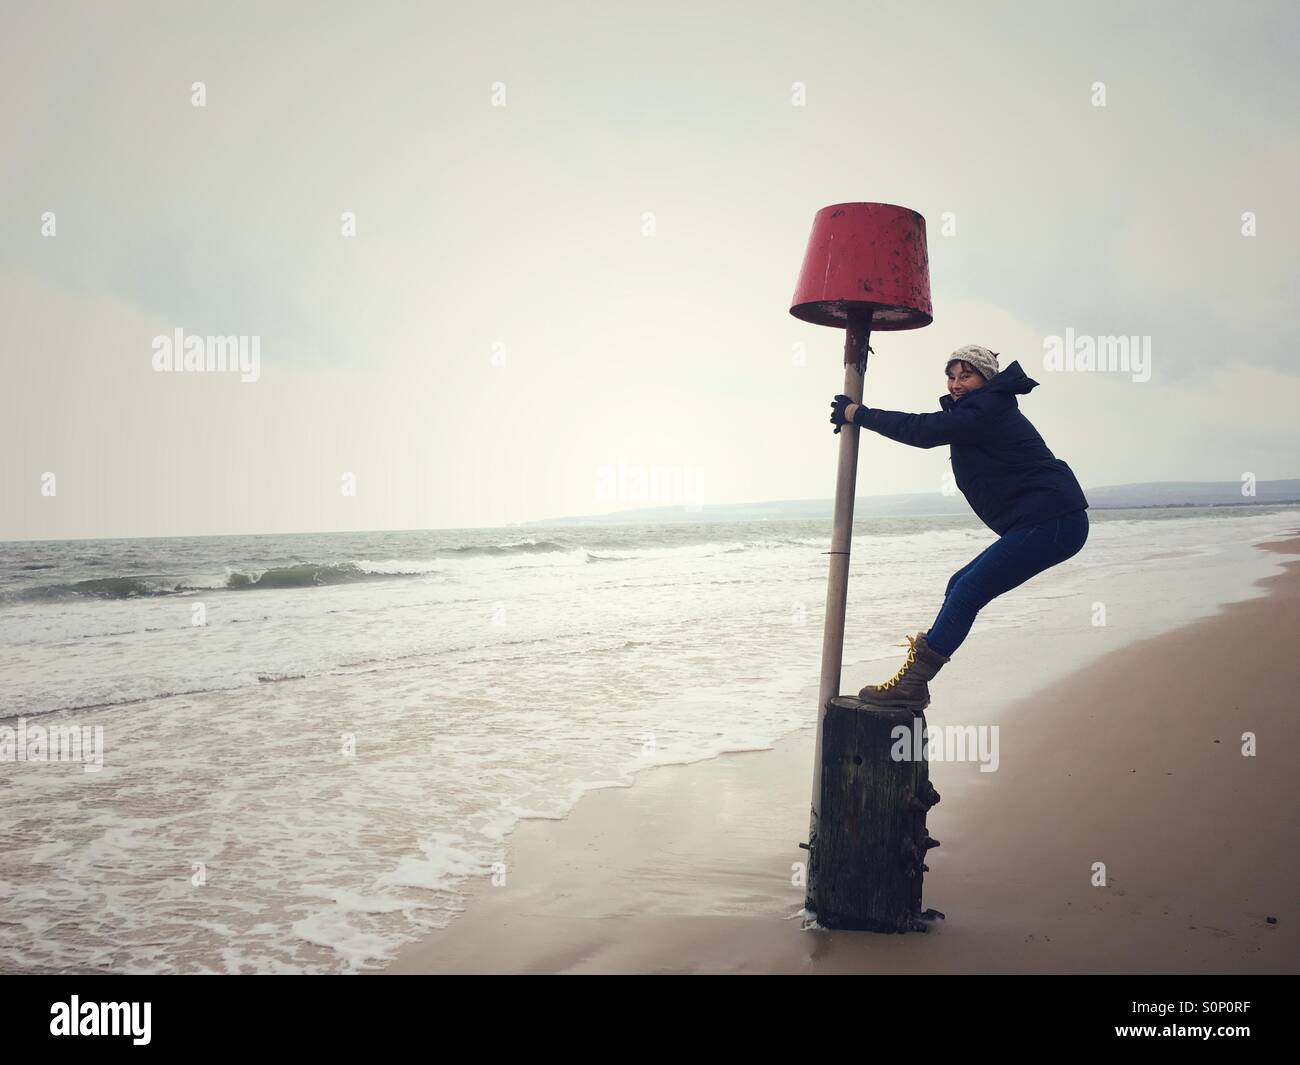 Woman having fun balancing on marker buoy on Dorset beach in winter - Stock Image